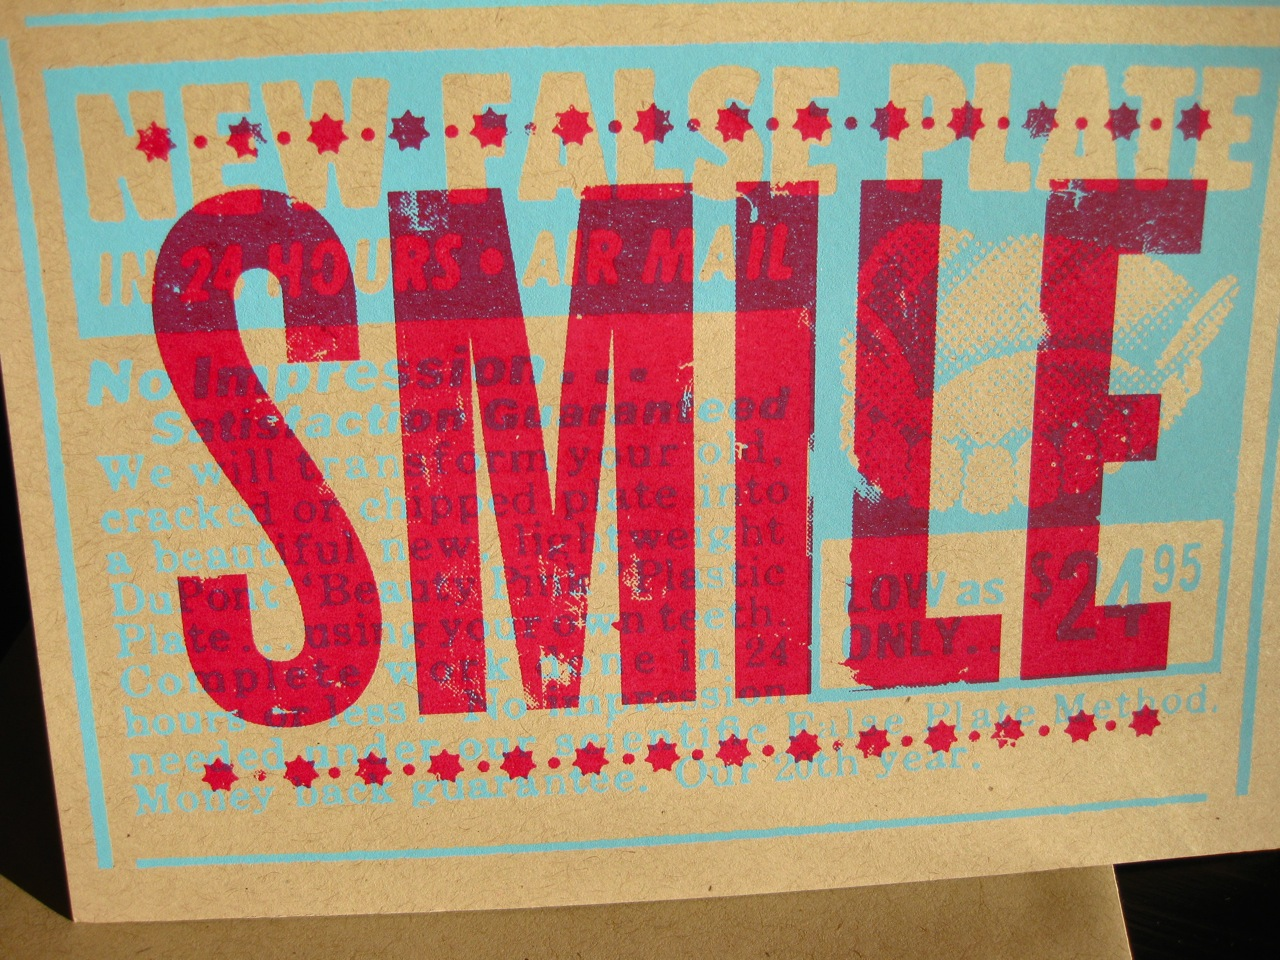 SMILE silkscreened card, also from L2